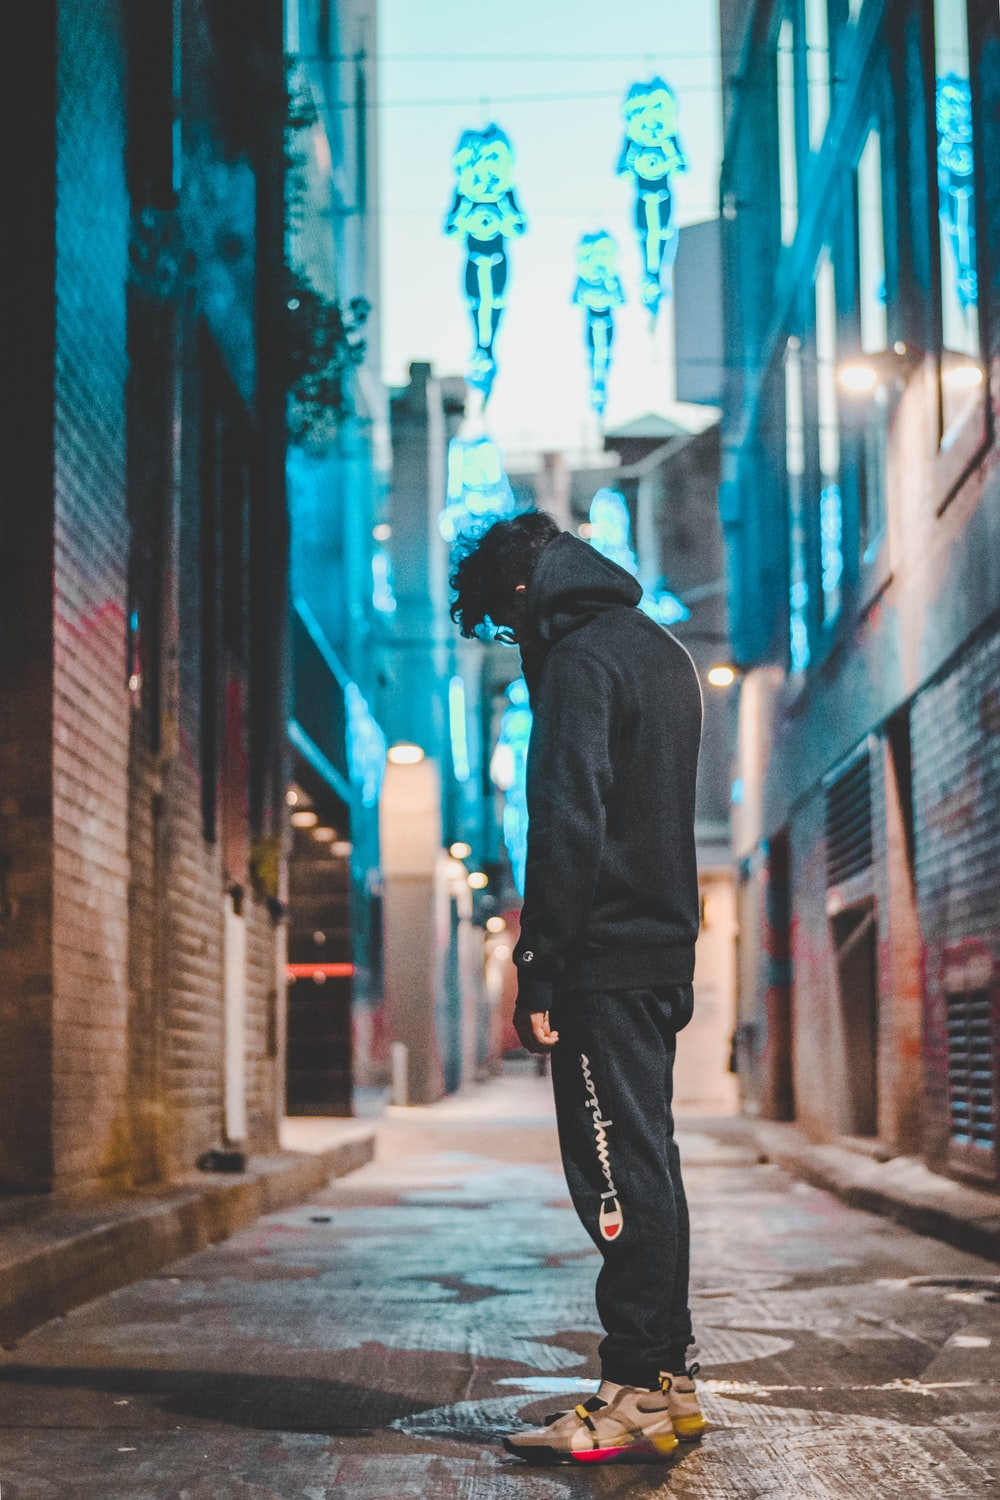 man standing in the middle of the alley